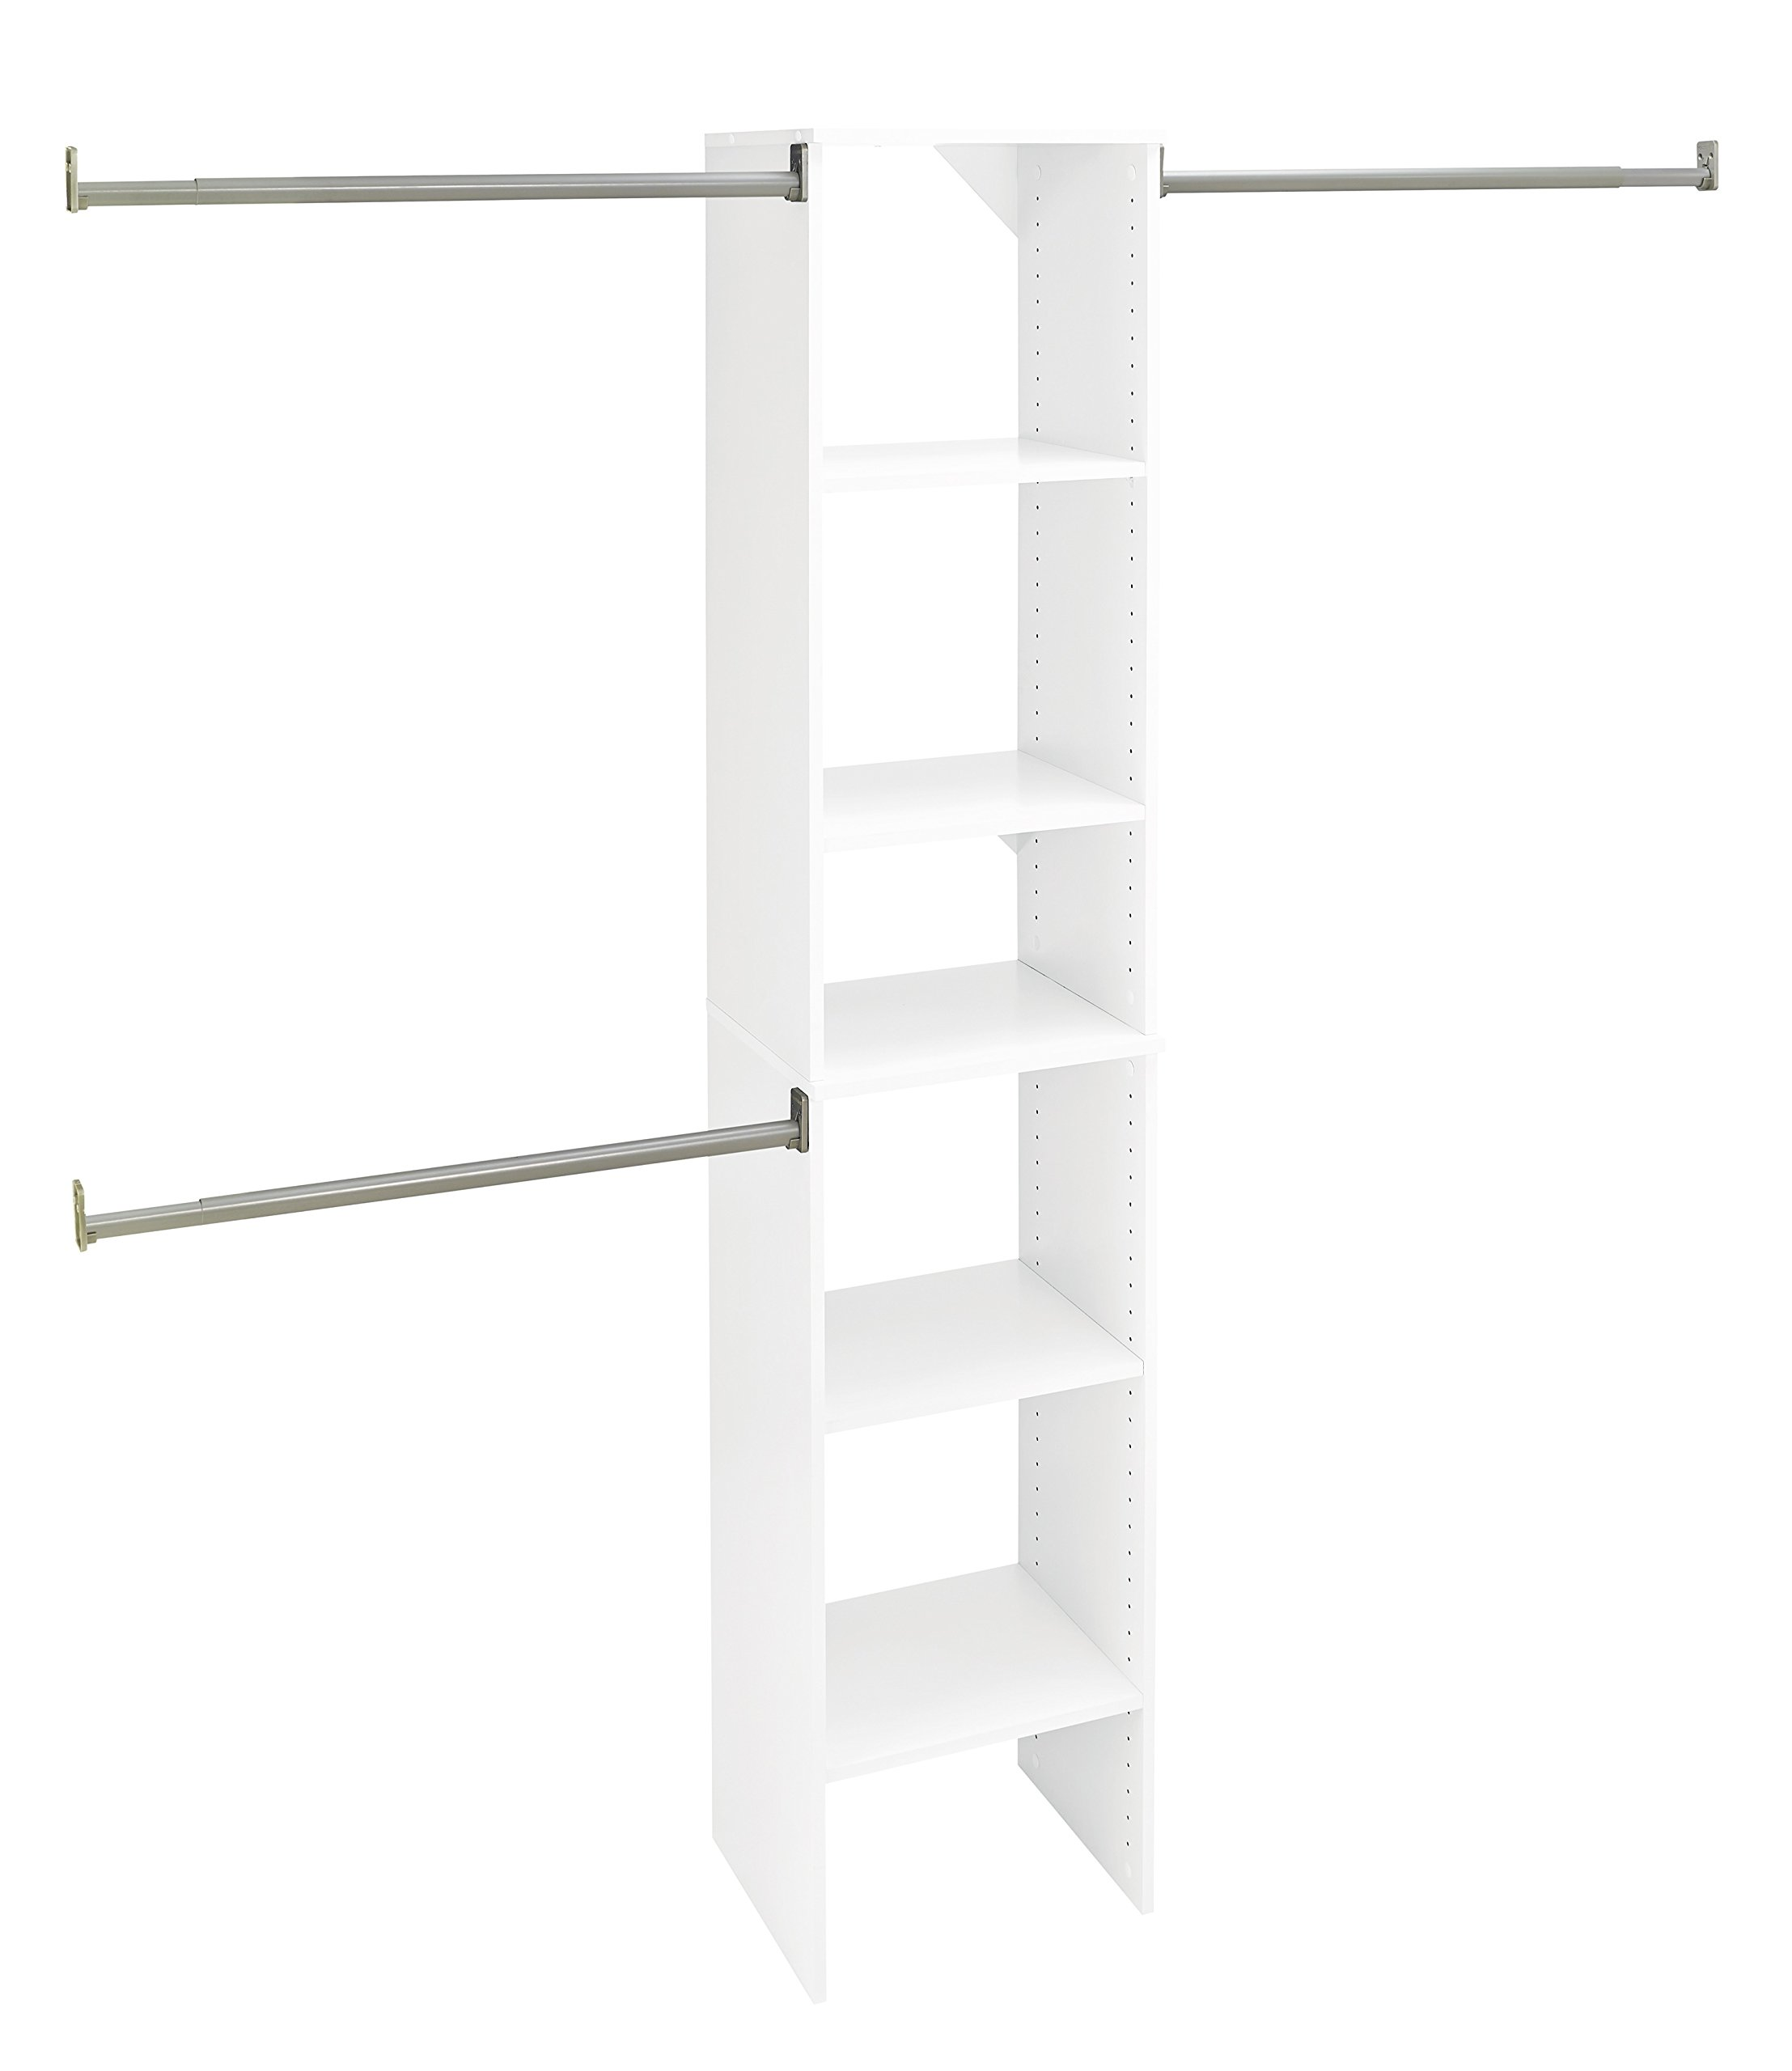 ClosetMaid 4868 SuiteSymphony 16-Inch Starter Tower Kit, Pure White by ClosetMaid (Image #1)